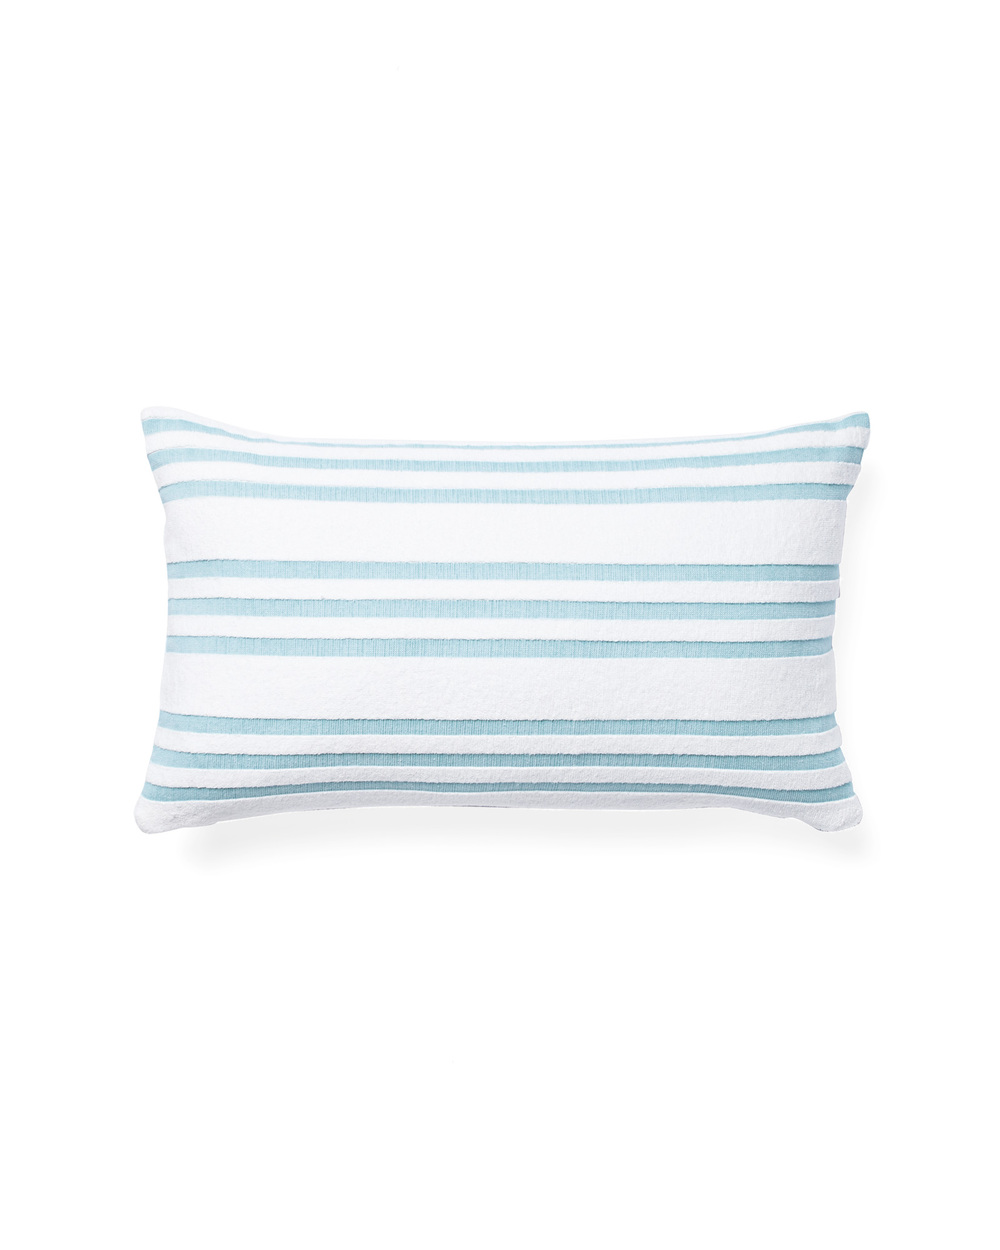 Pinstripe_Fouta_Outdoor_DecPillow_12x21_Surf_MV_Crop_SH.jpg